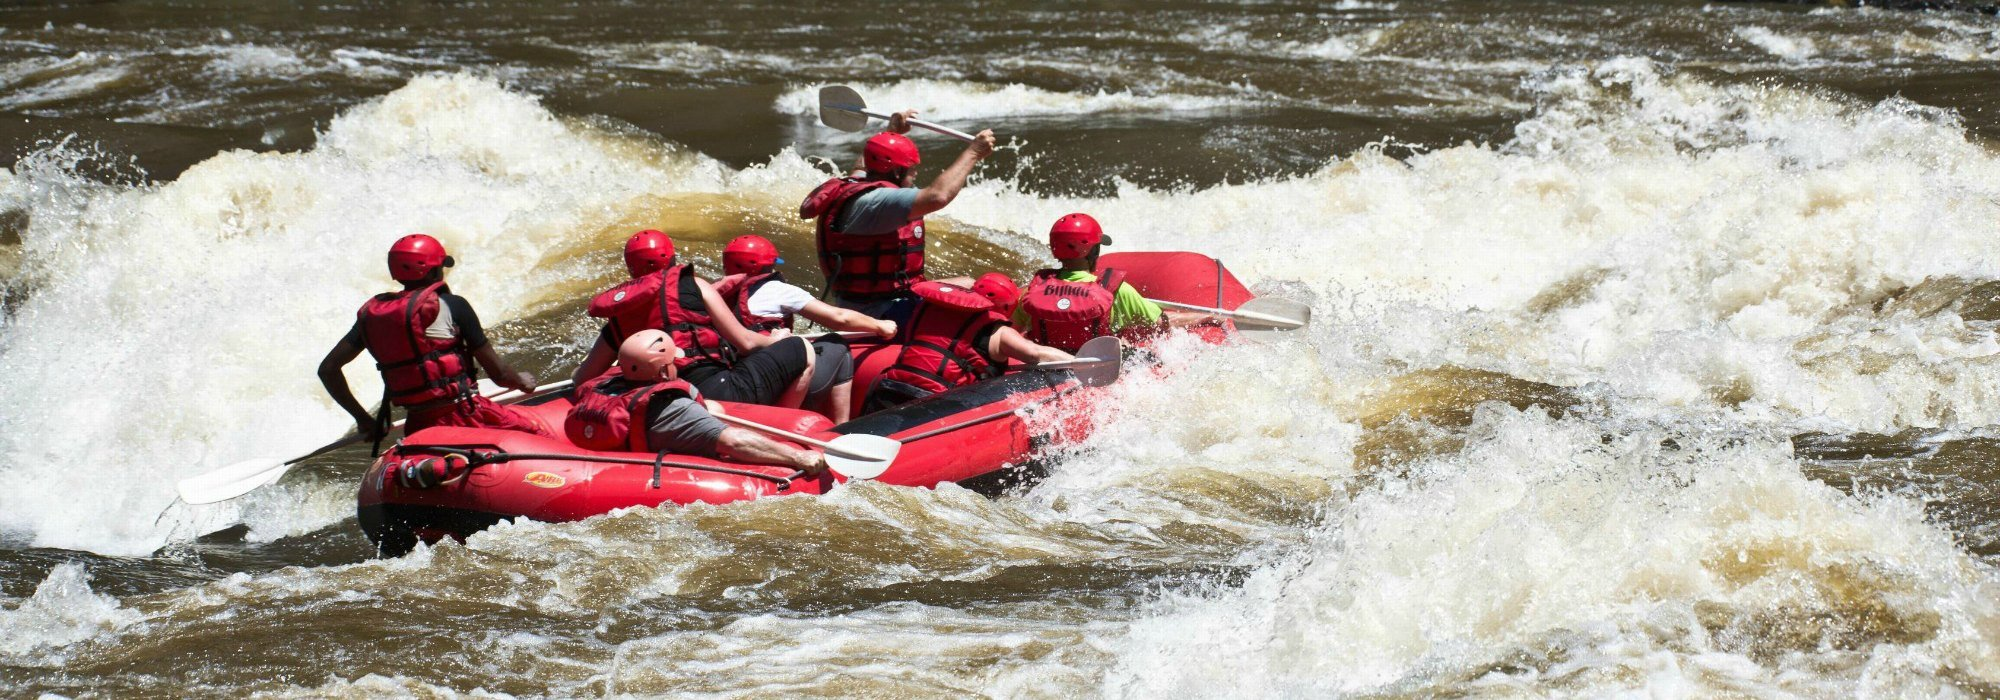 Victoria Falls White Water Rafting Adventure